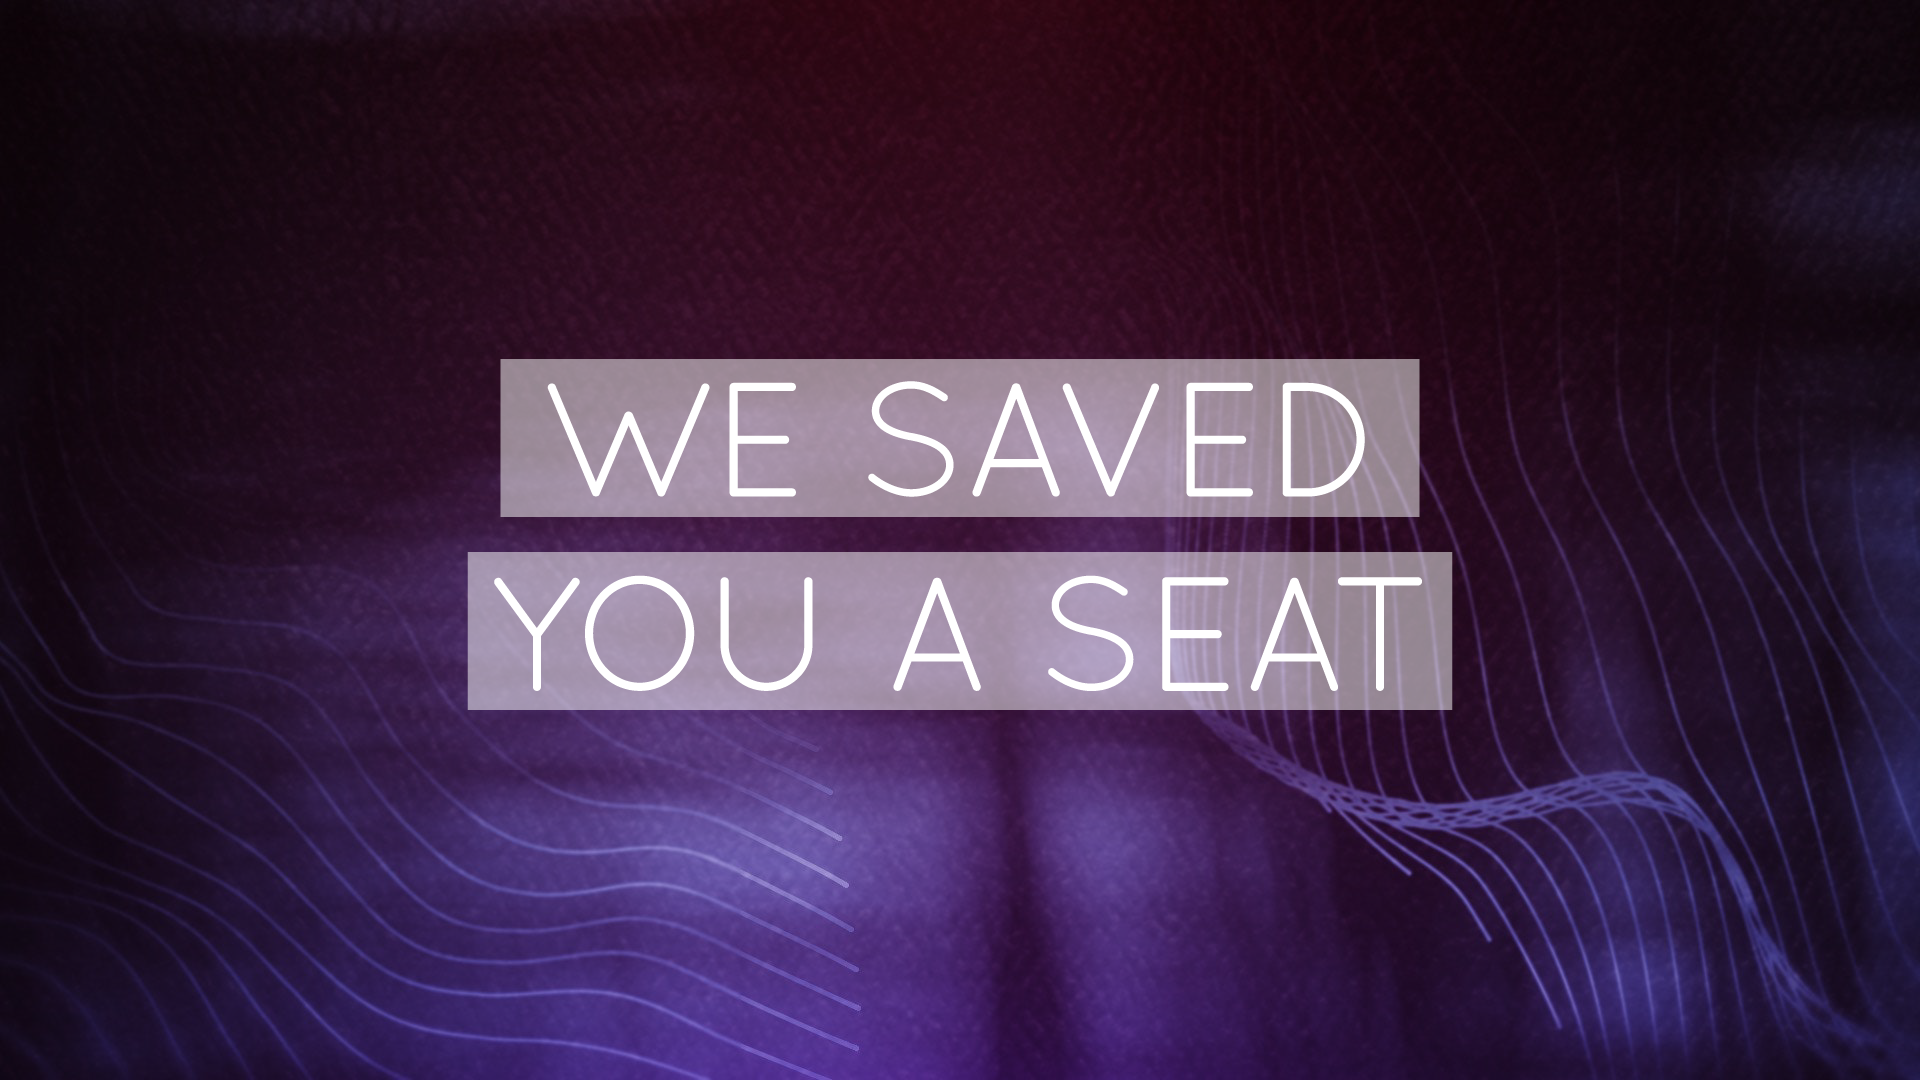 Savedseat 01